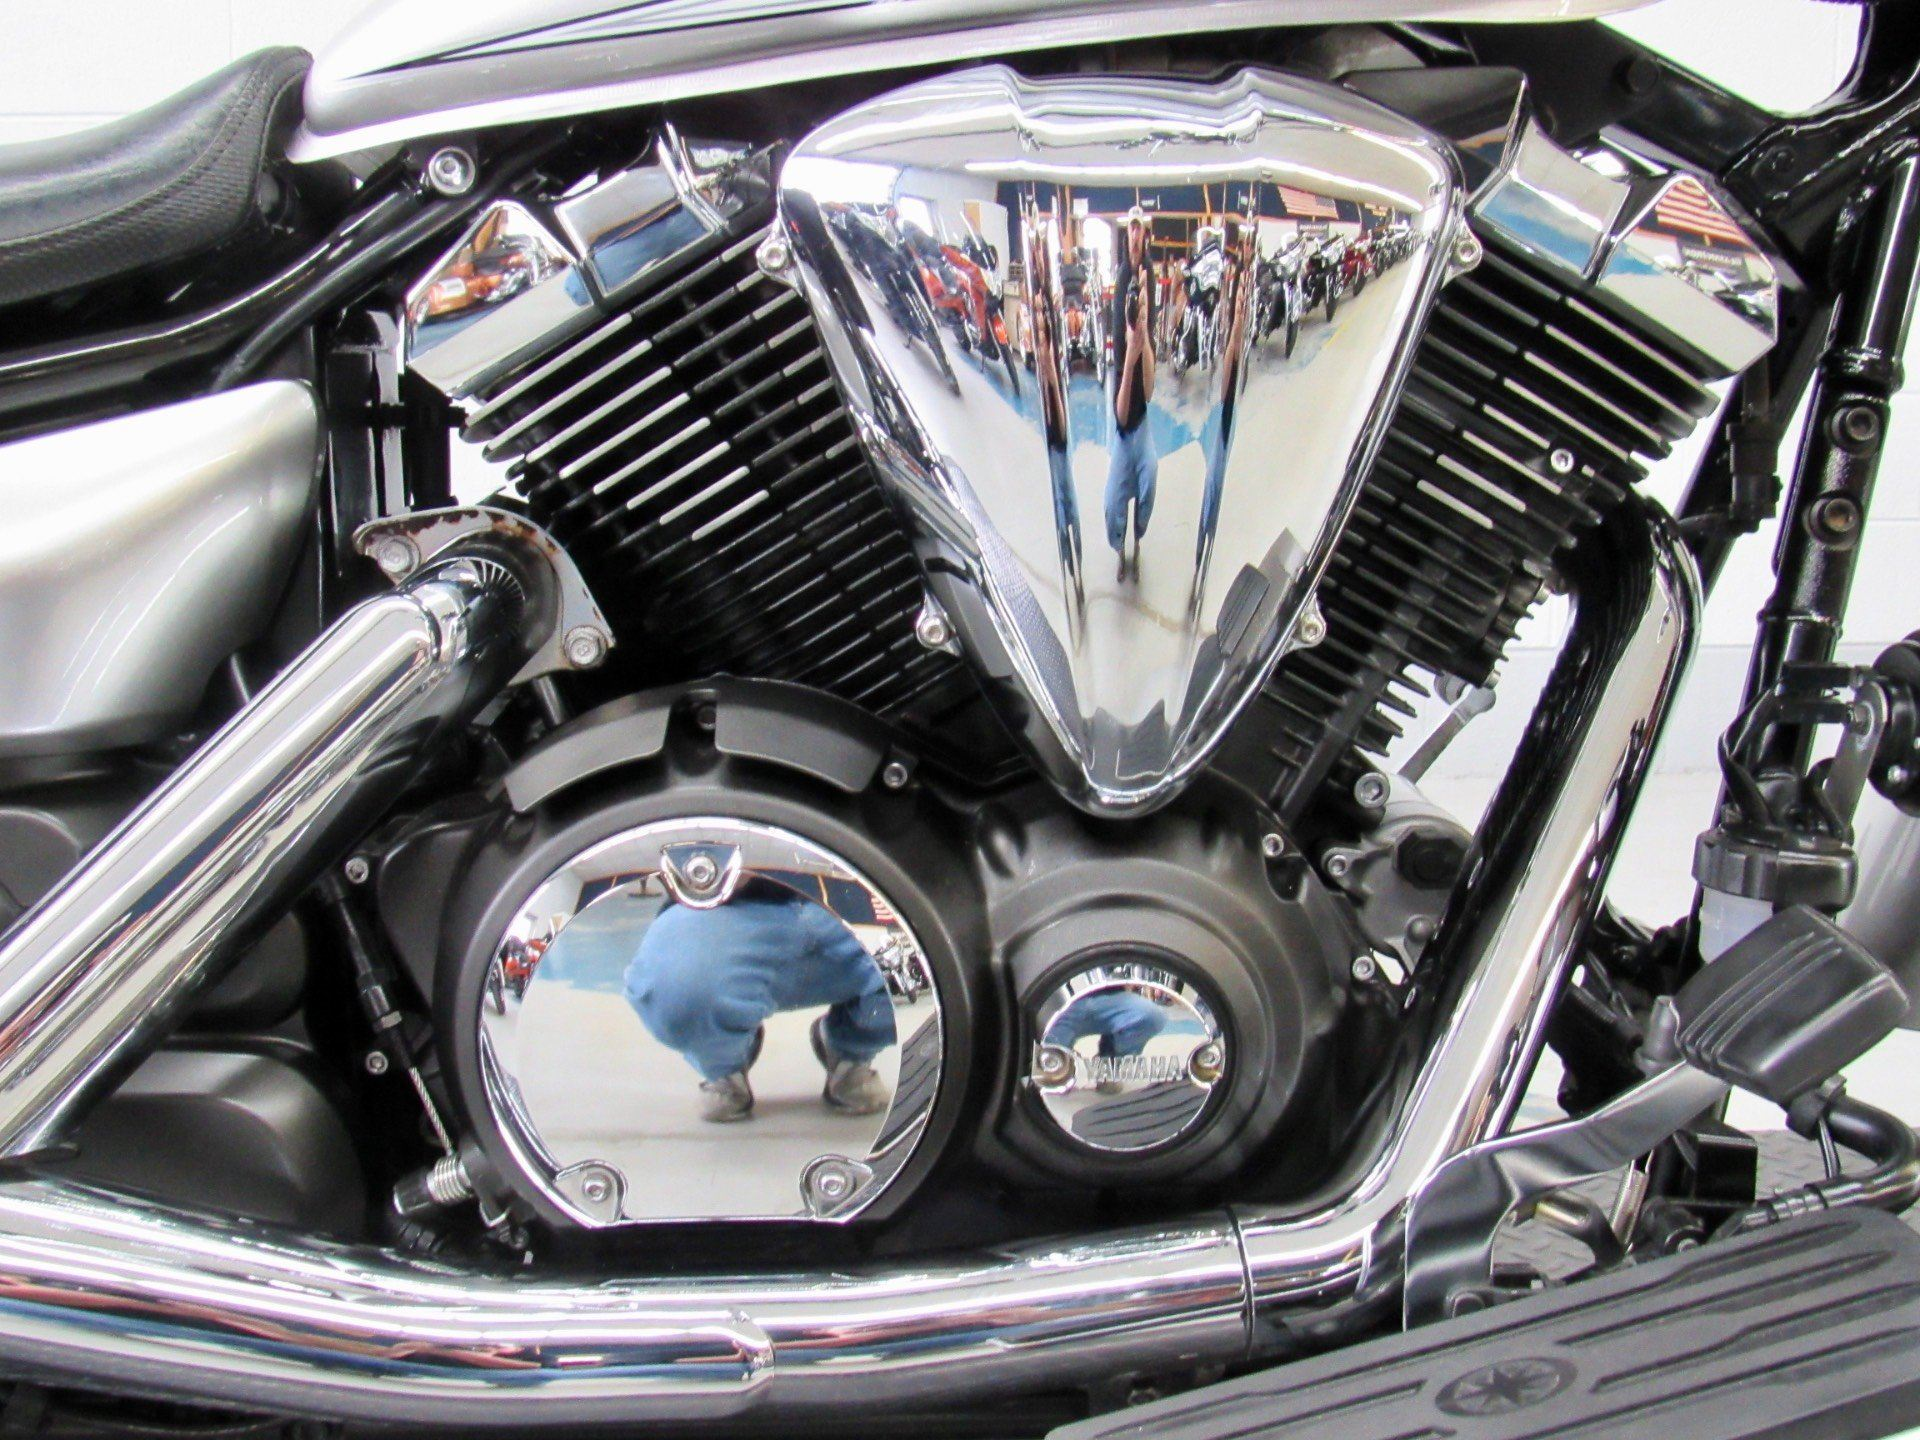 2012 Yamaha V Star 950  in Fredericksburg, Virginia - Photo 14